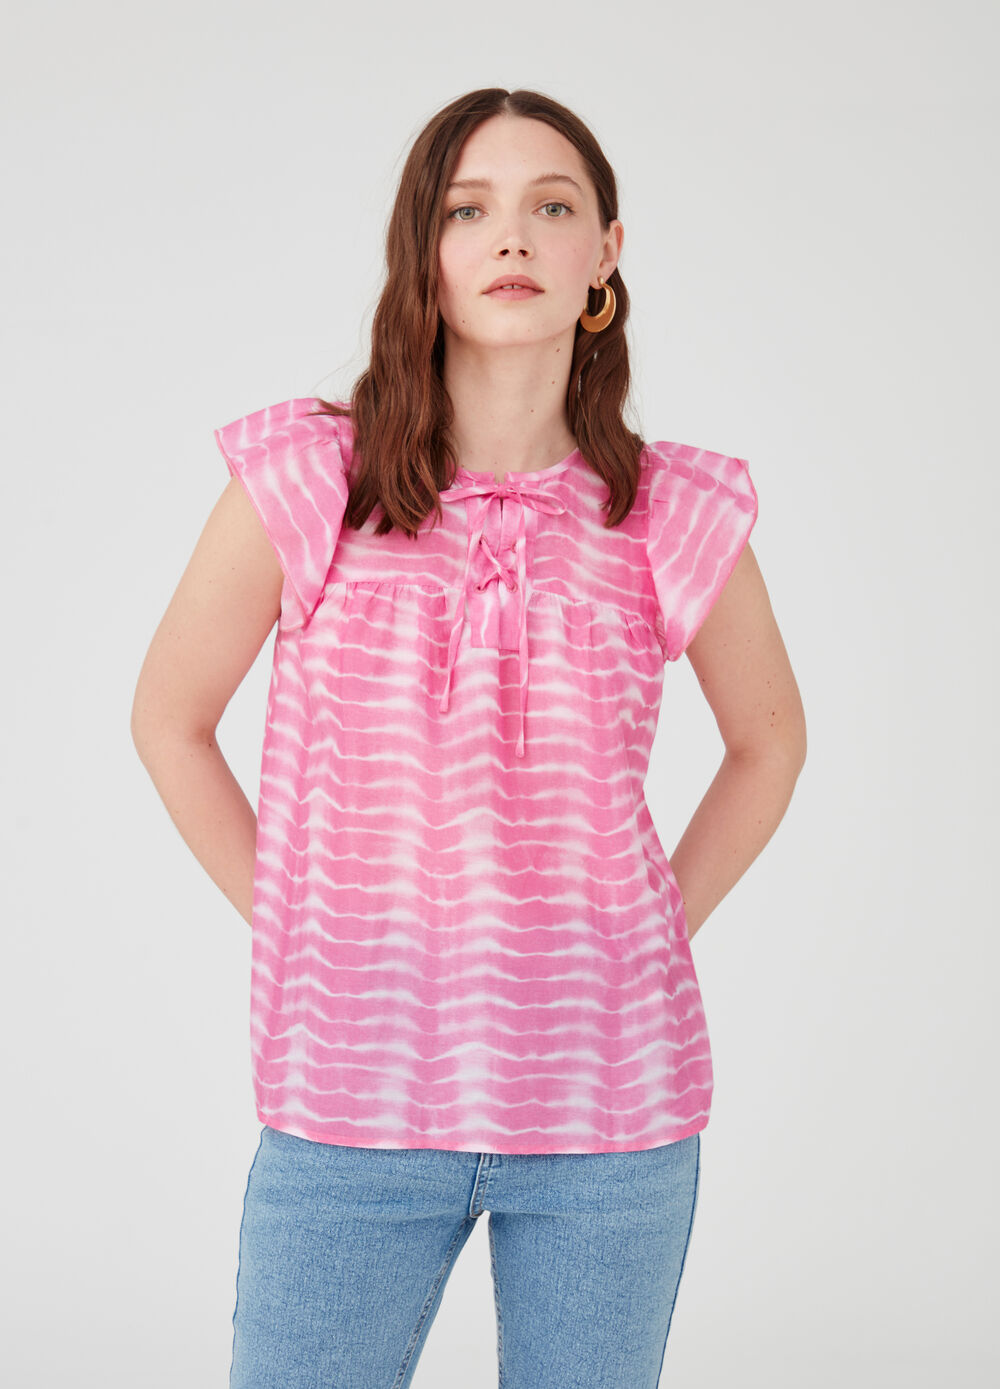 Blouse with striped capped sleeves